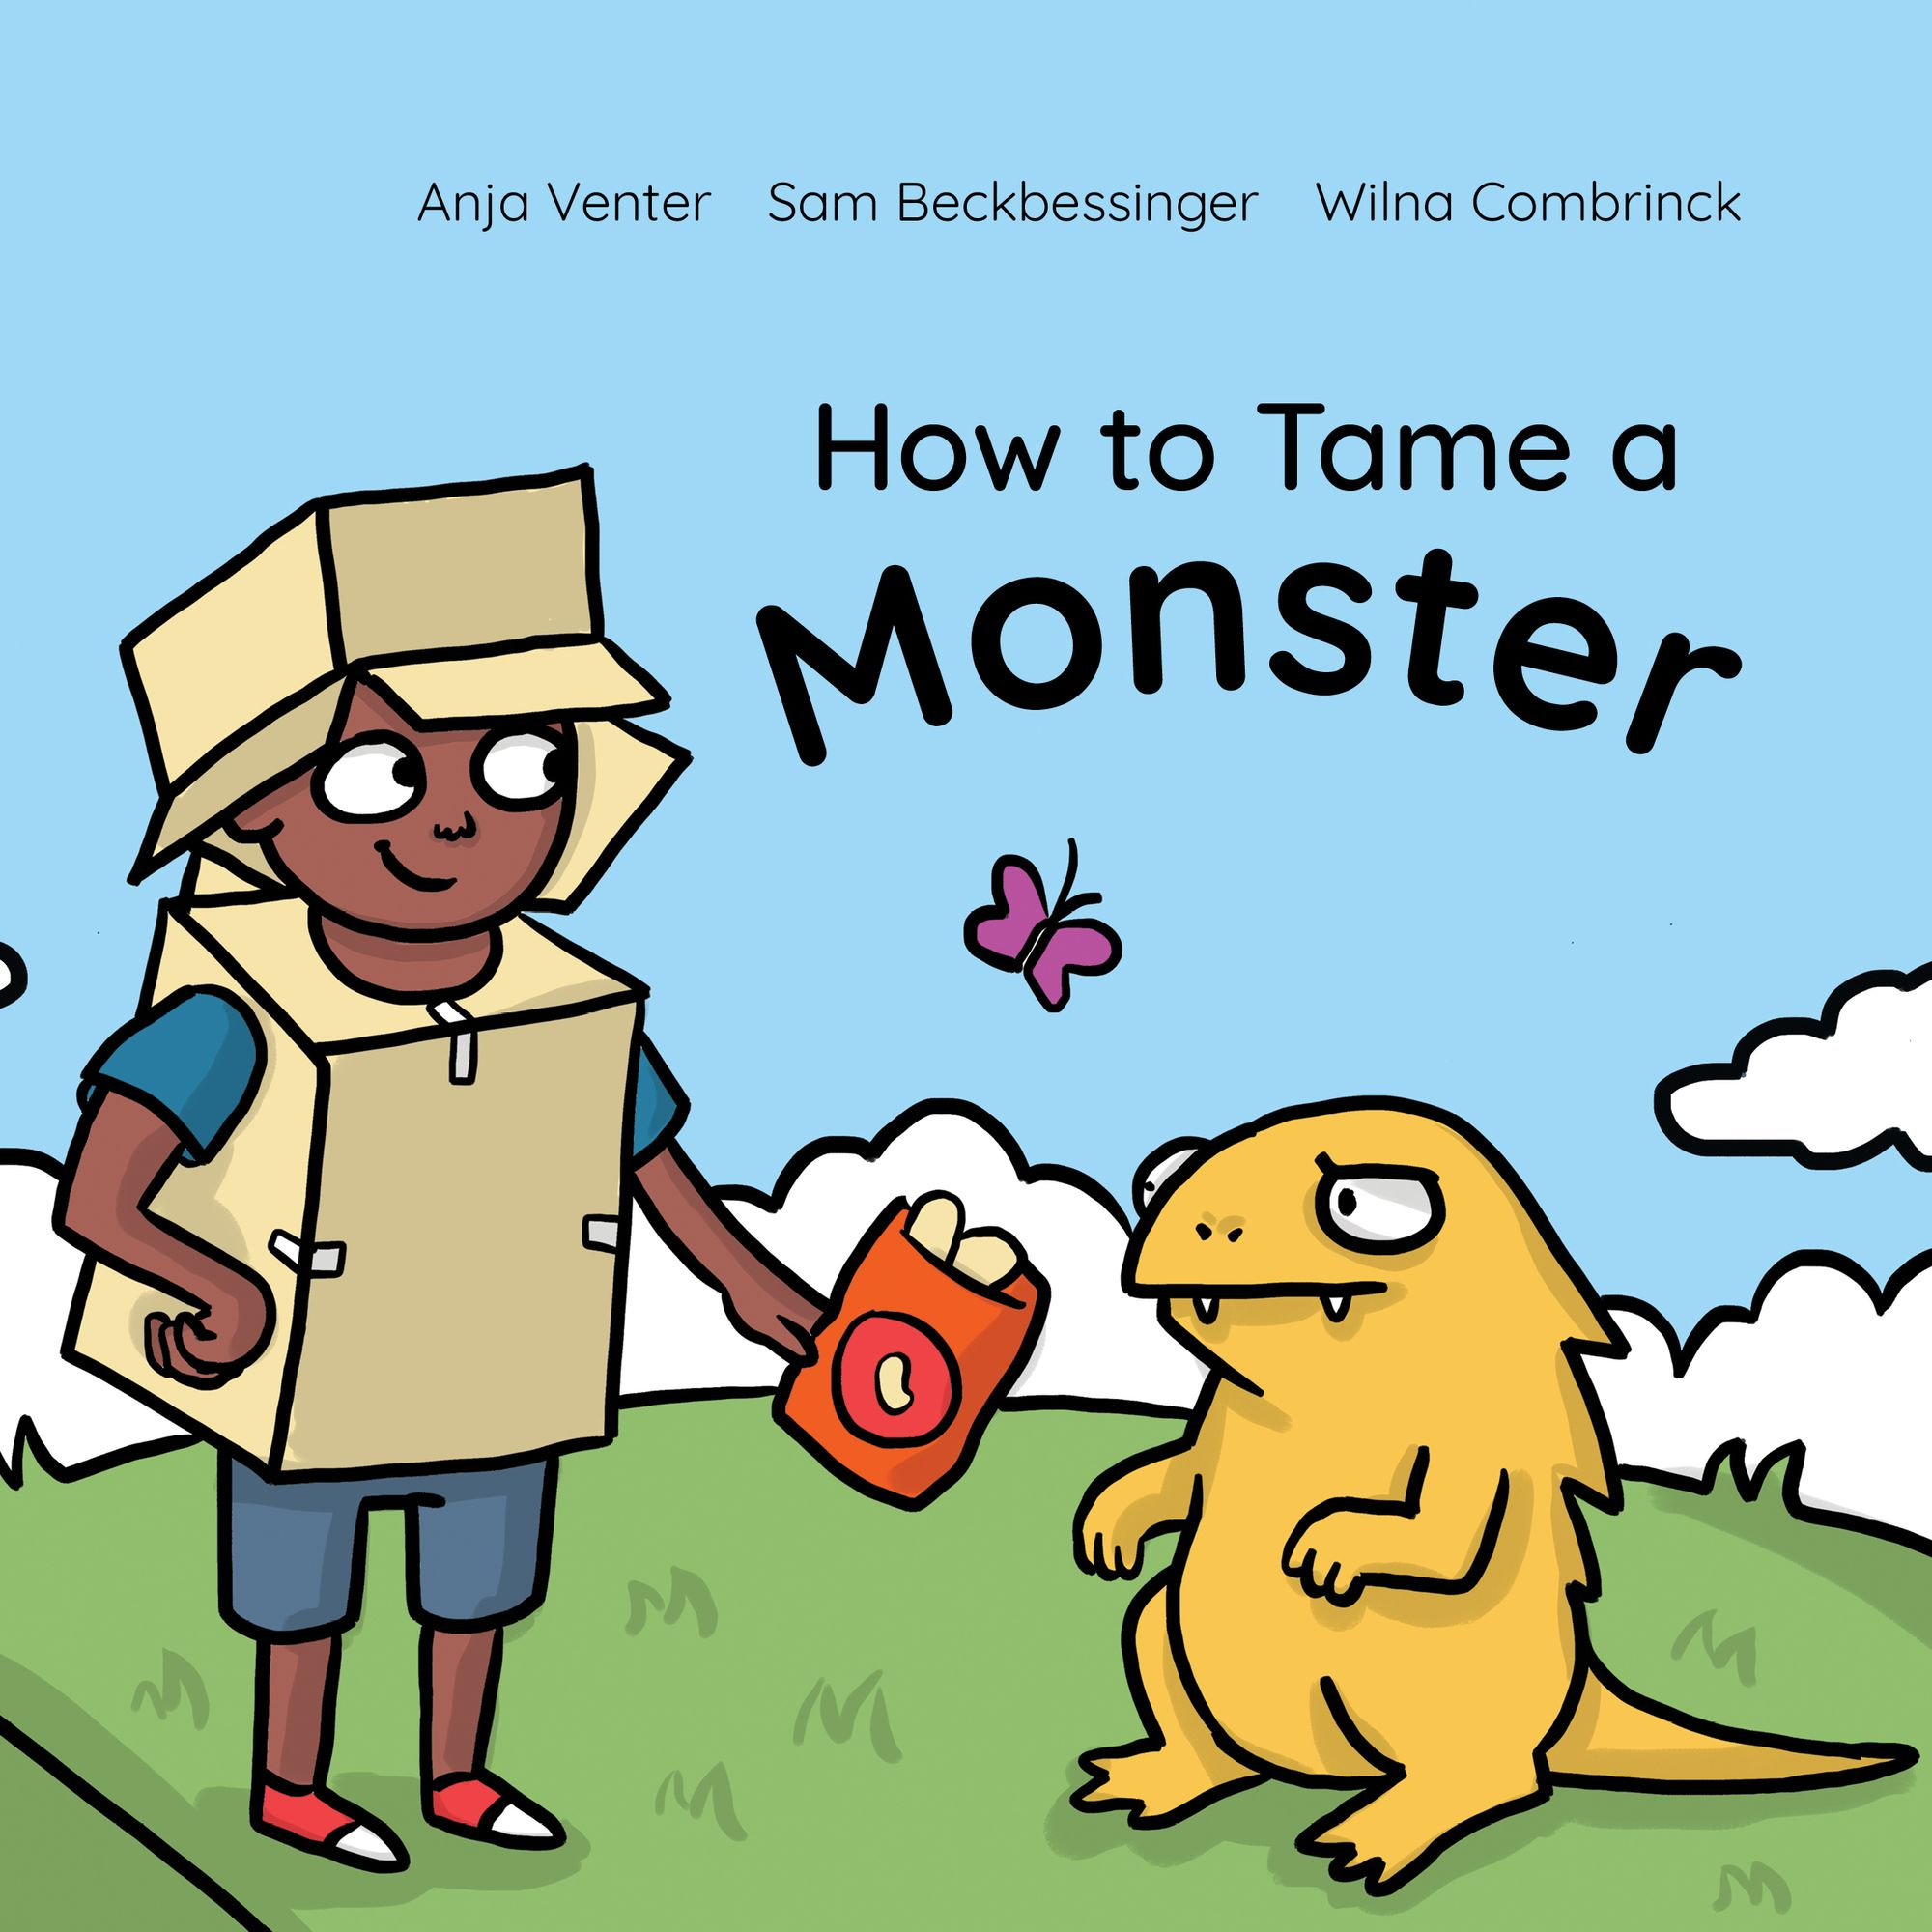 How to Tame a Monster by Sam Beckbessinger Wilna Combrinck and Anja Venter